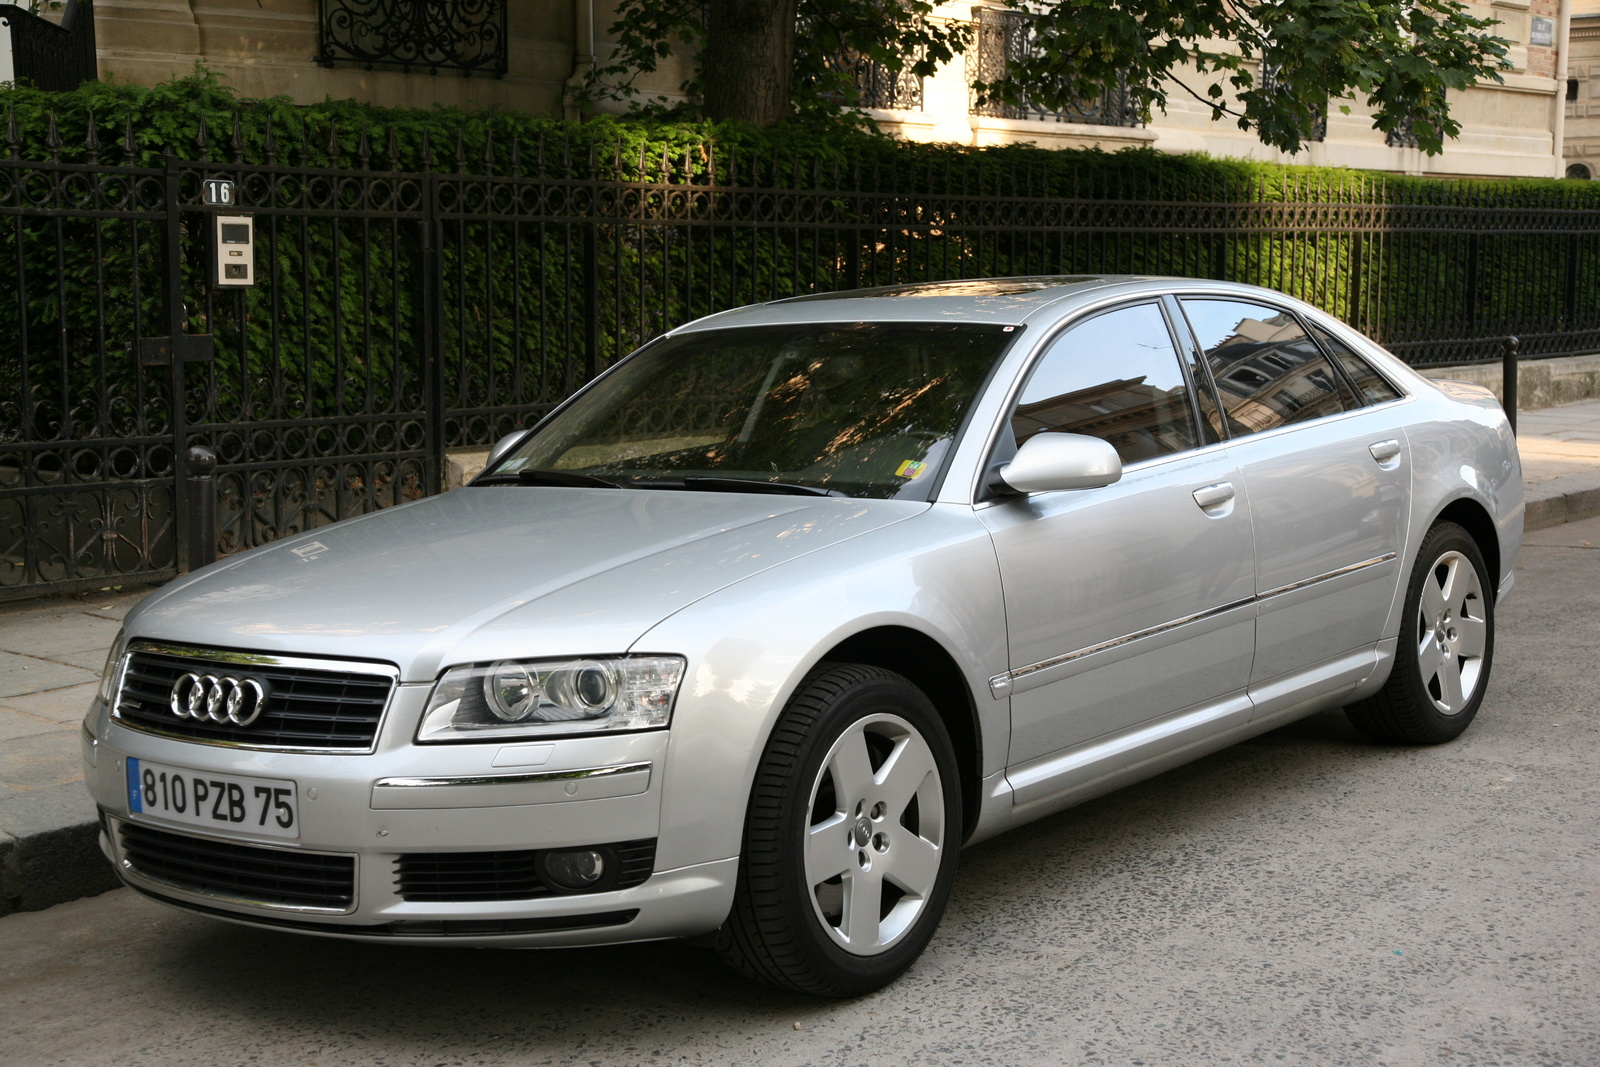 2004 Audi A8 4 Dr L quattro AWD Sedan picture